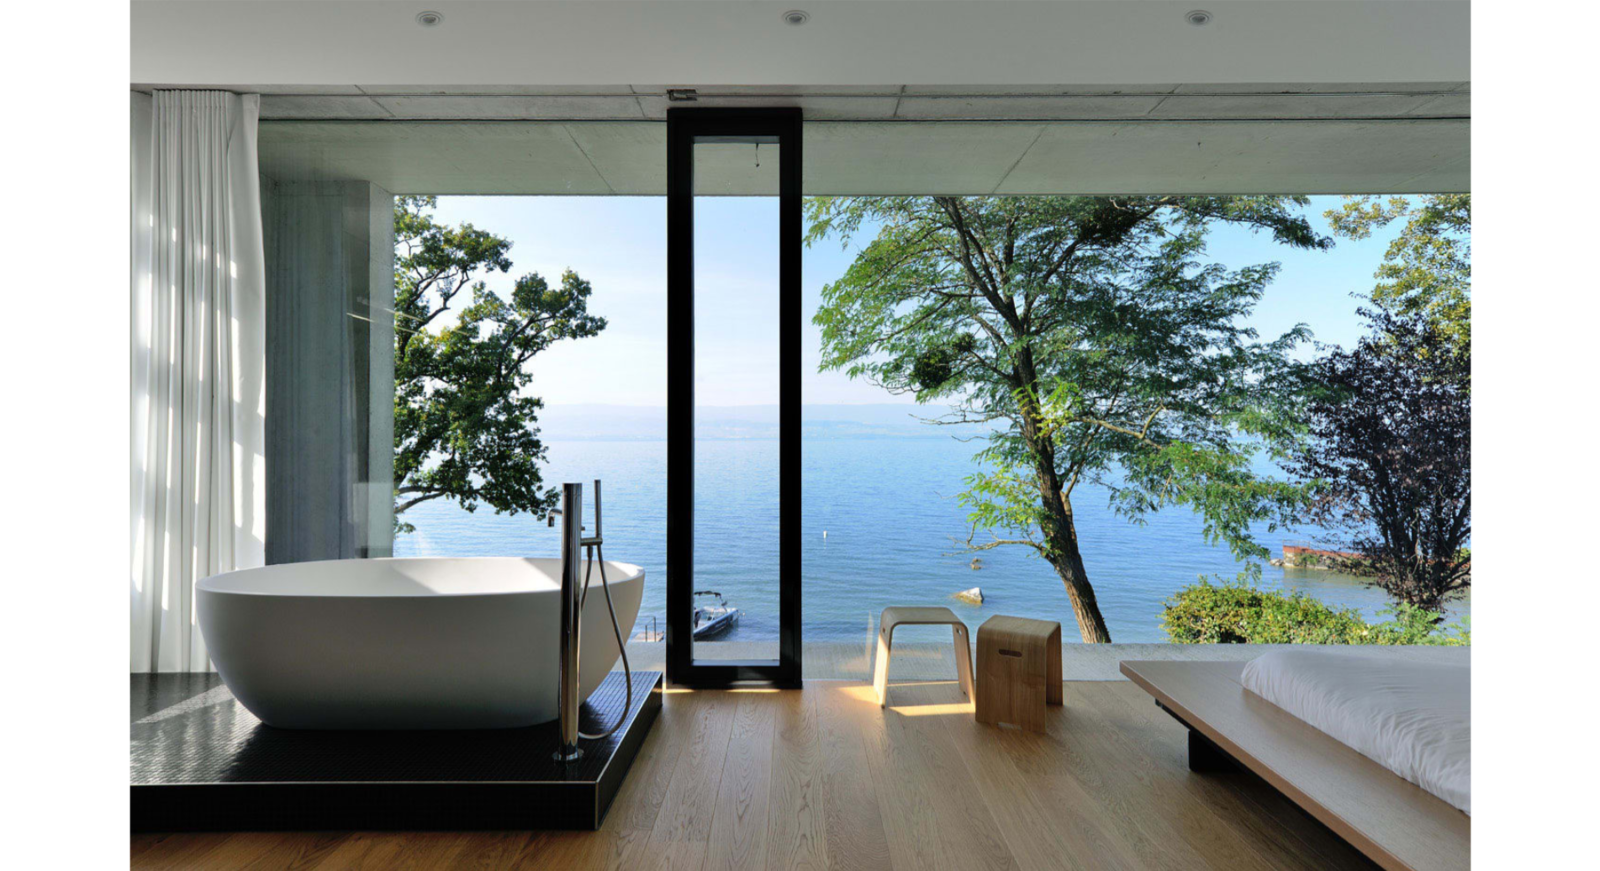 The bathroom Tagged: Light Hardwood Floor, Bed, Chair, Ceiling Lighting, Freestanding Tub, Concrete Wall, Tile Counter, Windows, Sliding Window Type, and Metal. House on the Lake by AUM architecture